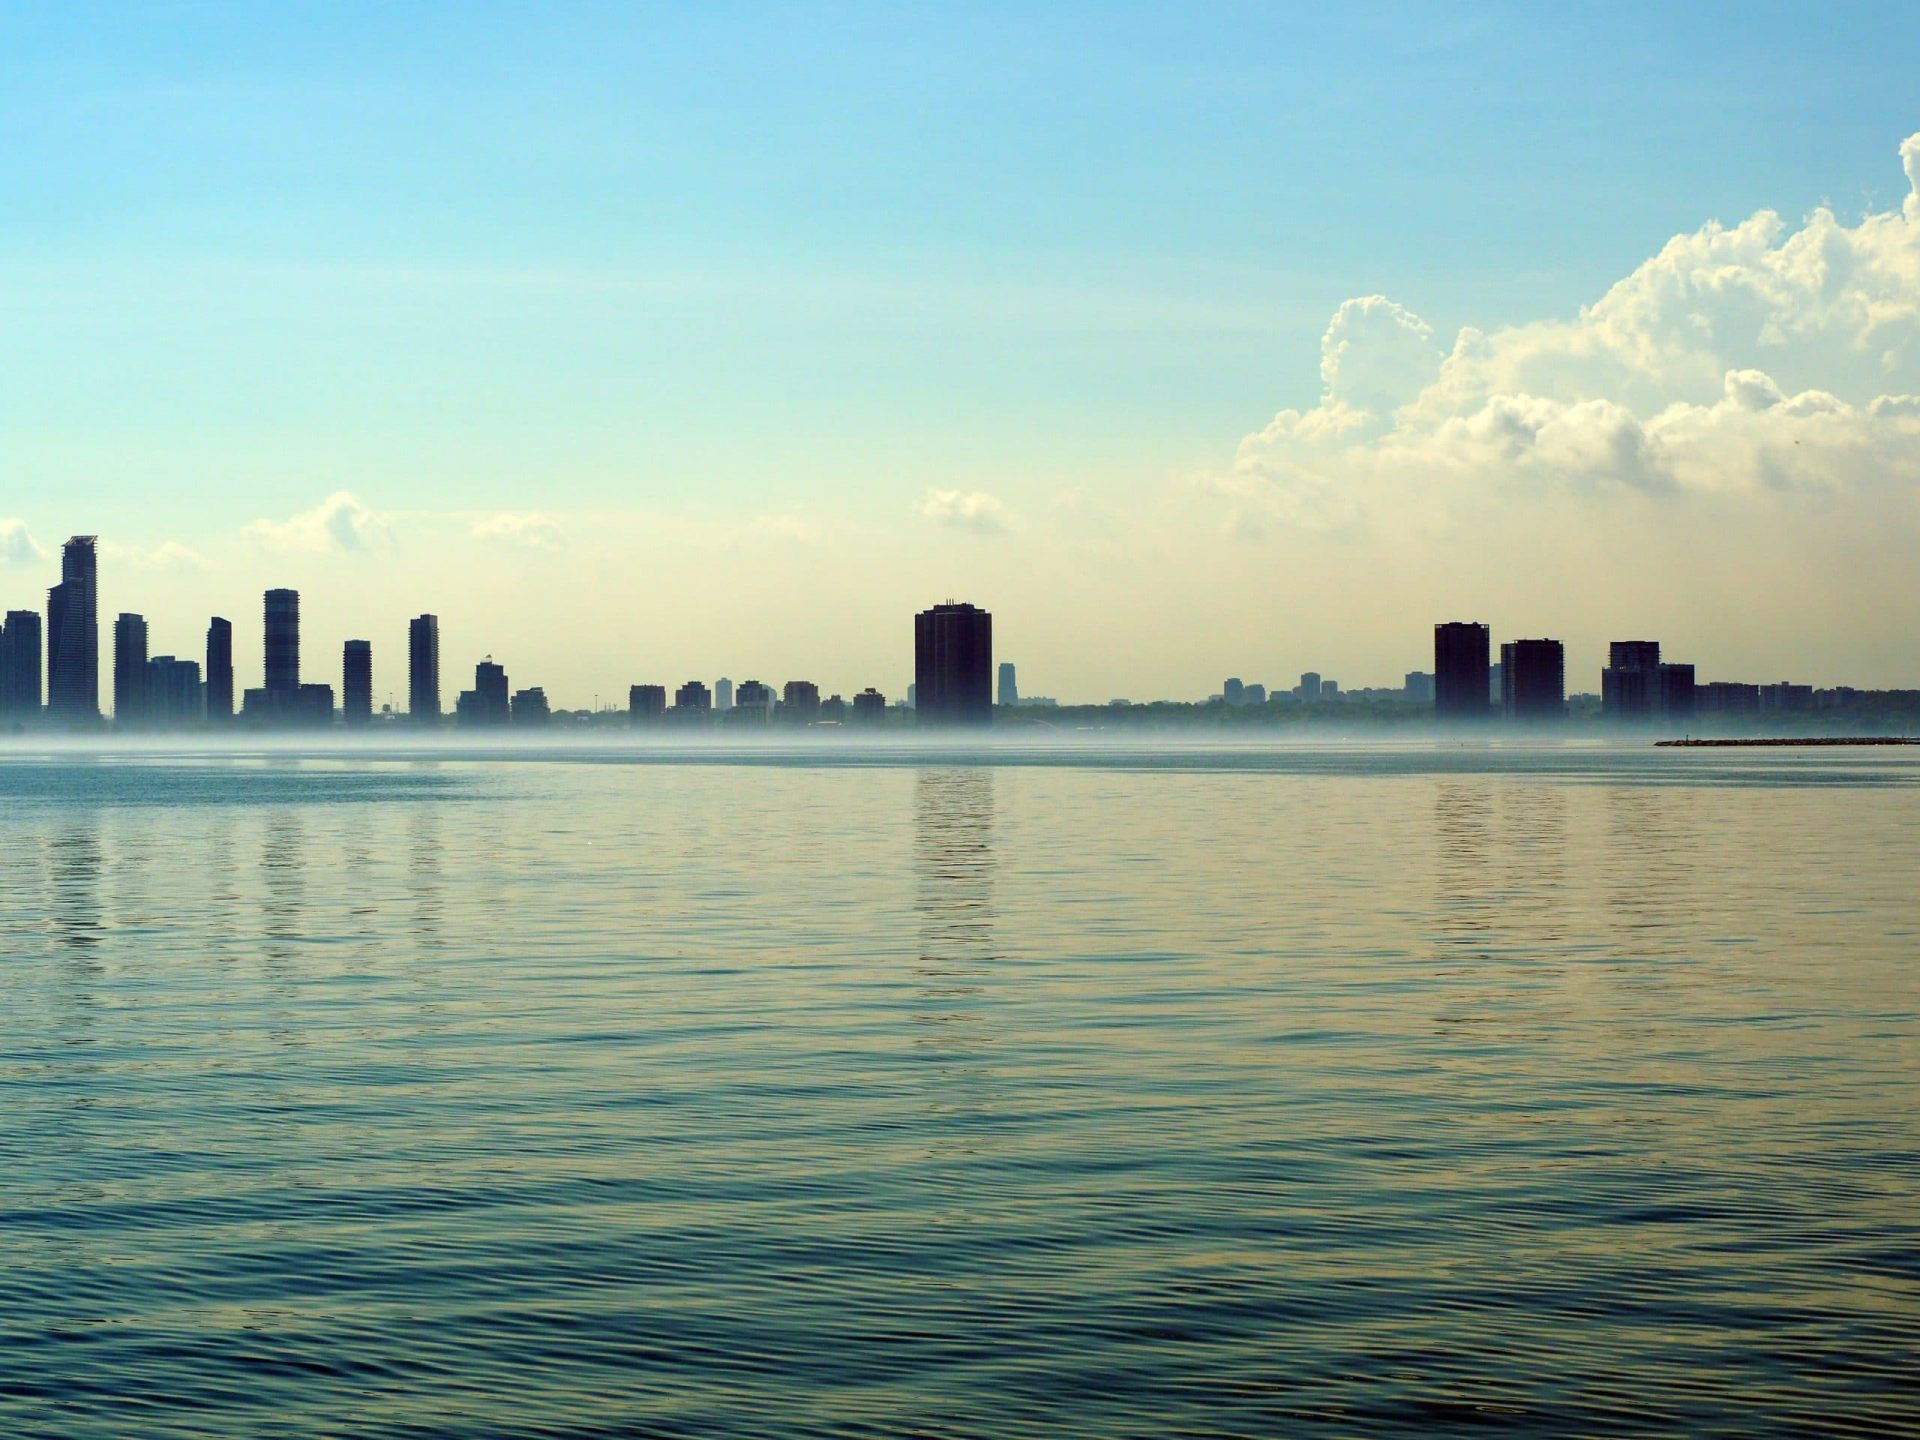 Things to know about Greater Toronto Area